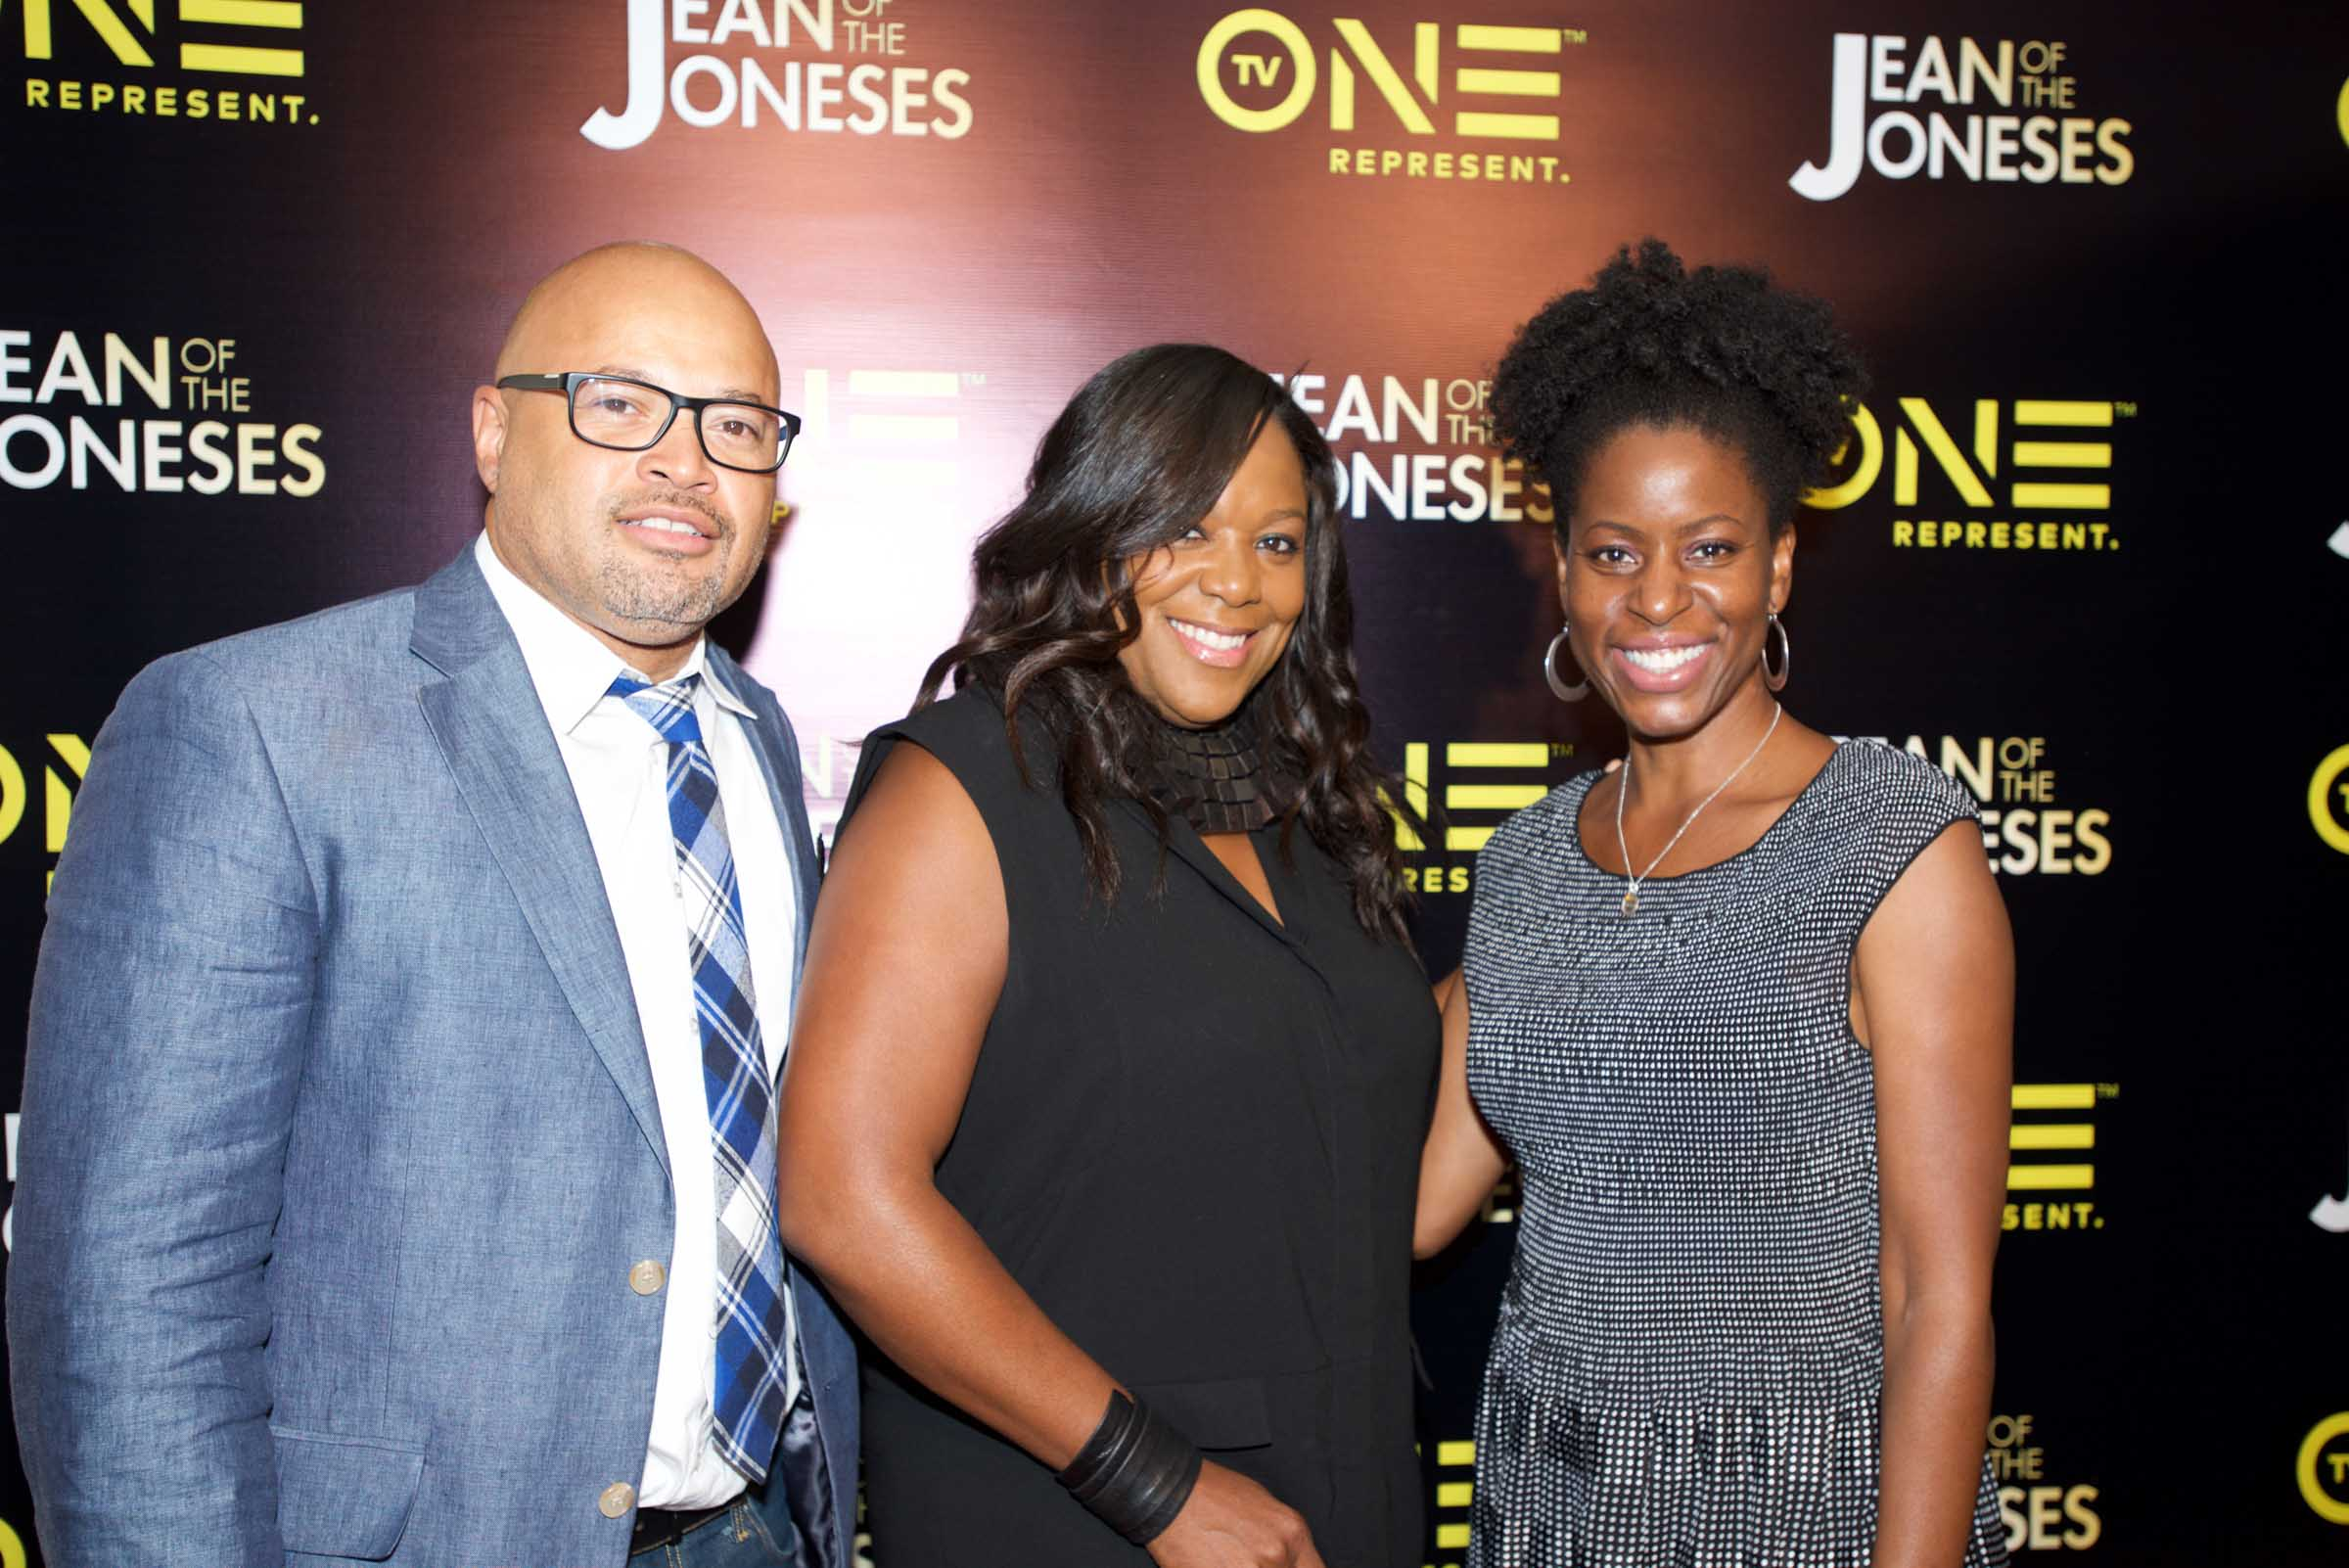 Jean of the Joneses movie premiere. Photo by Earl Gibson III